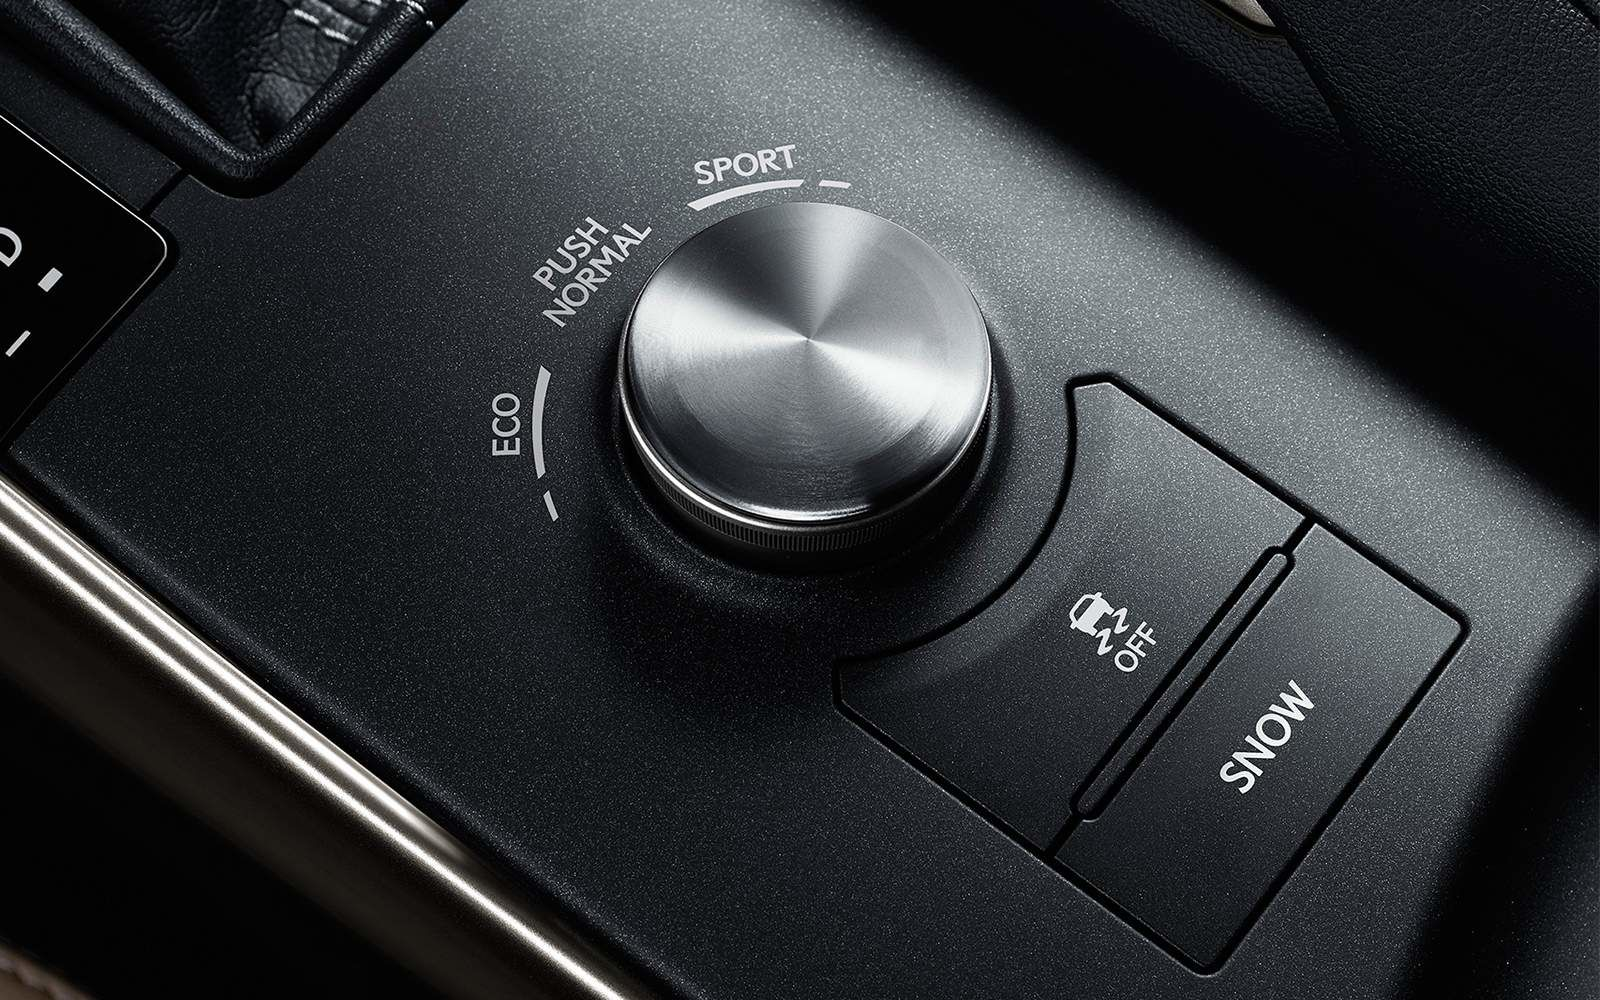 Lexus 2020 Is Drive Mode Select L